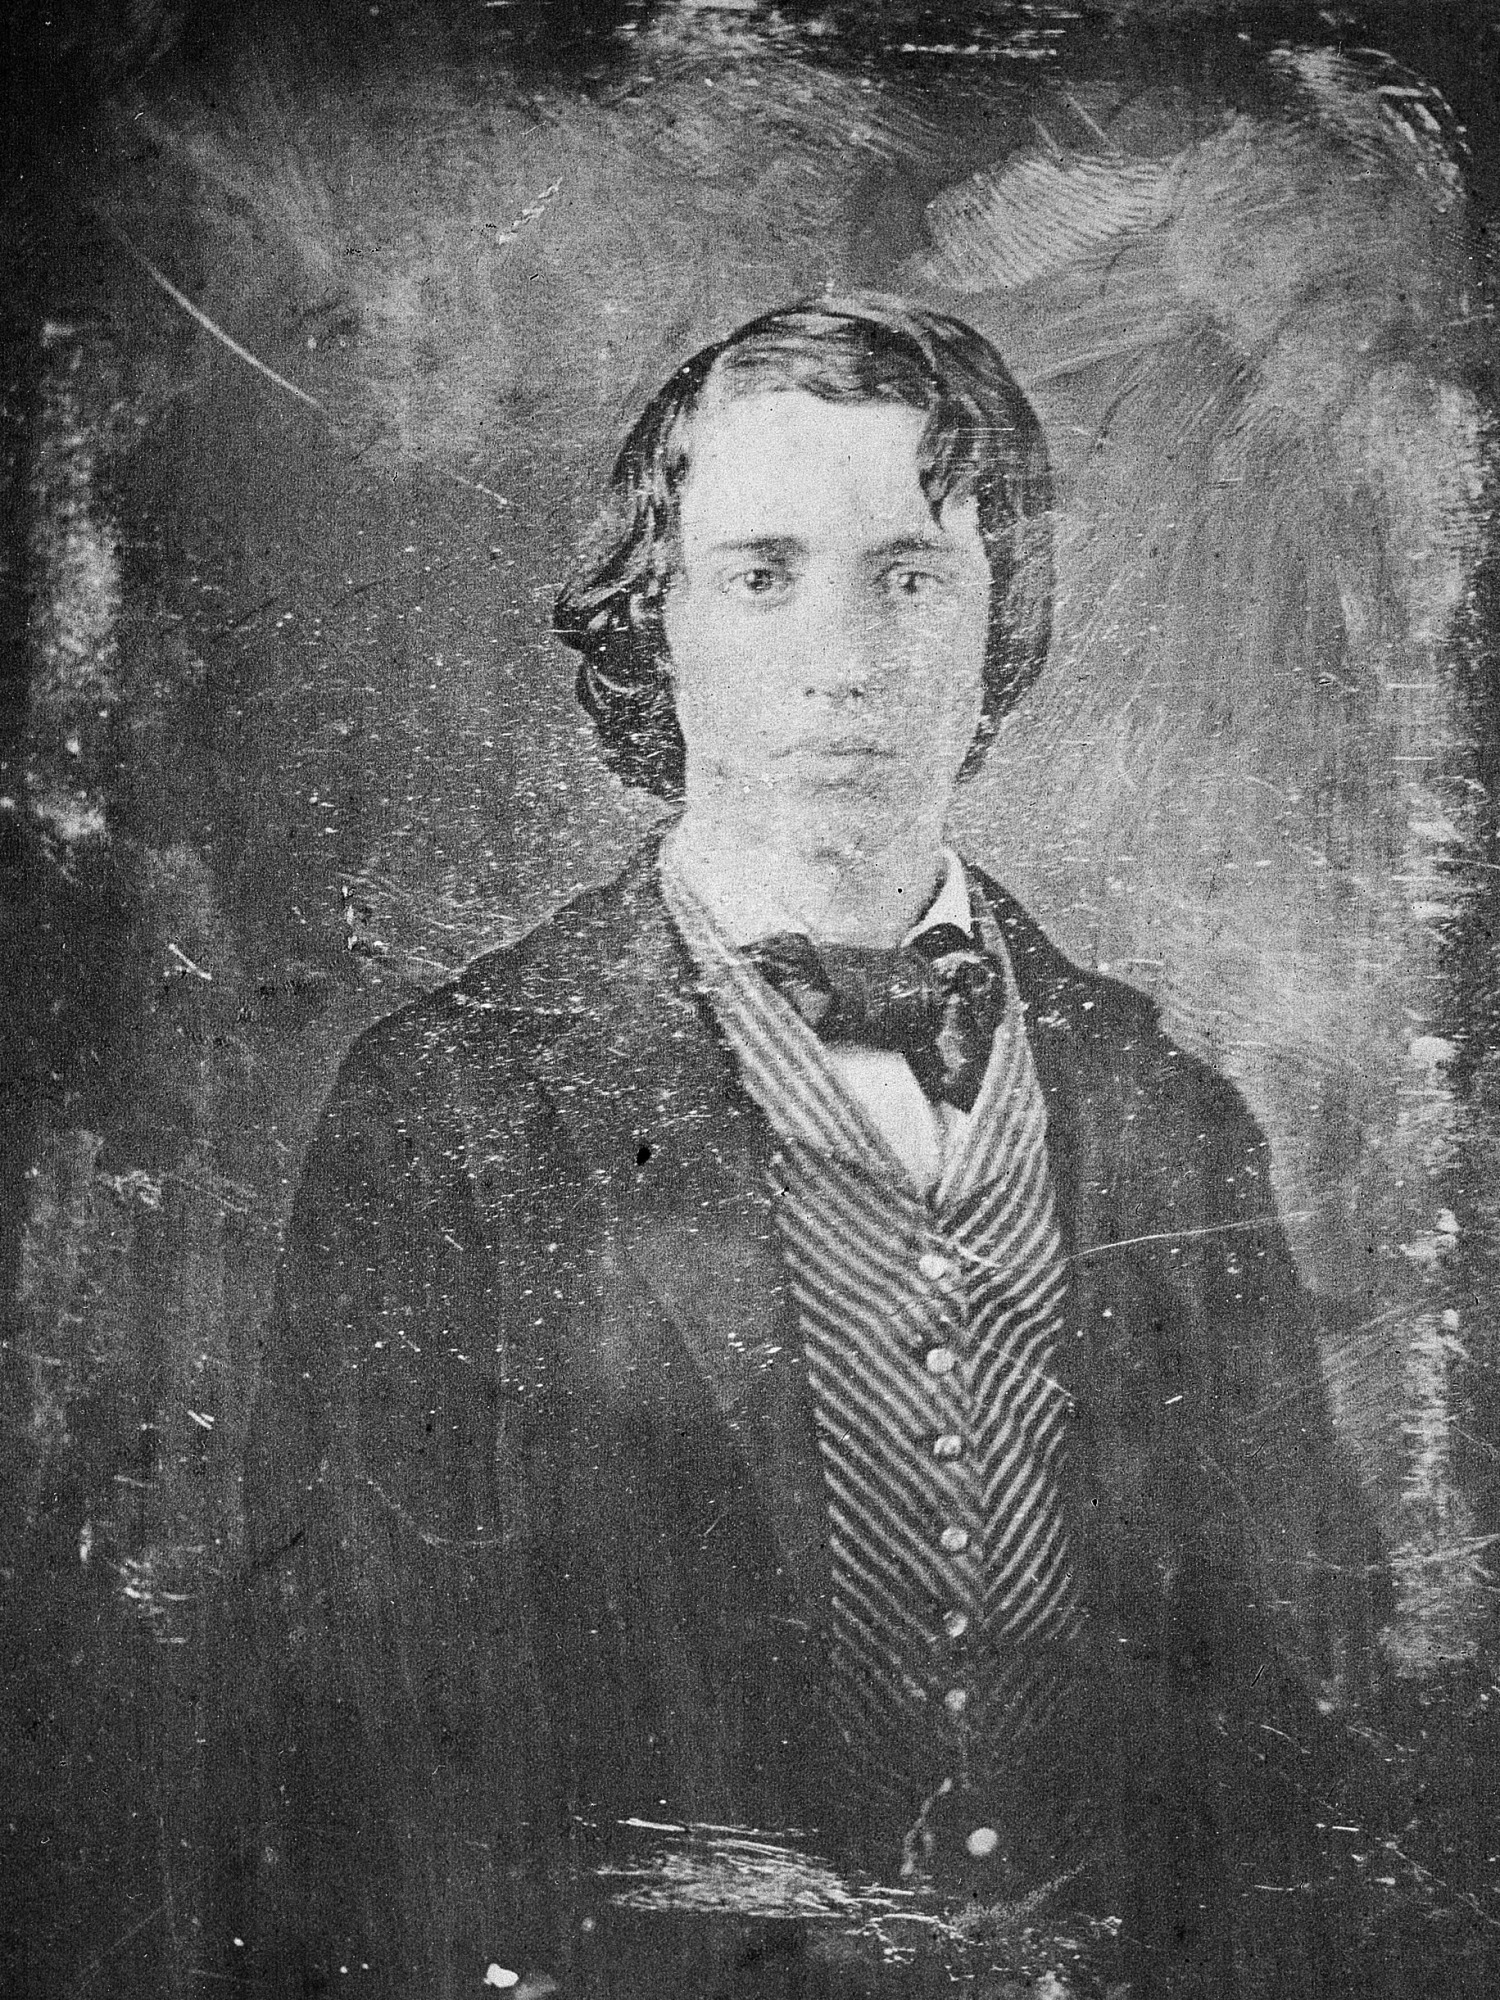 Photograph believed to be William Alexander Henry, c. 1860. Smithsonian Institution Archives, negative number 82-3190.